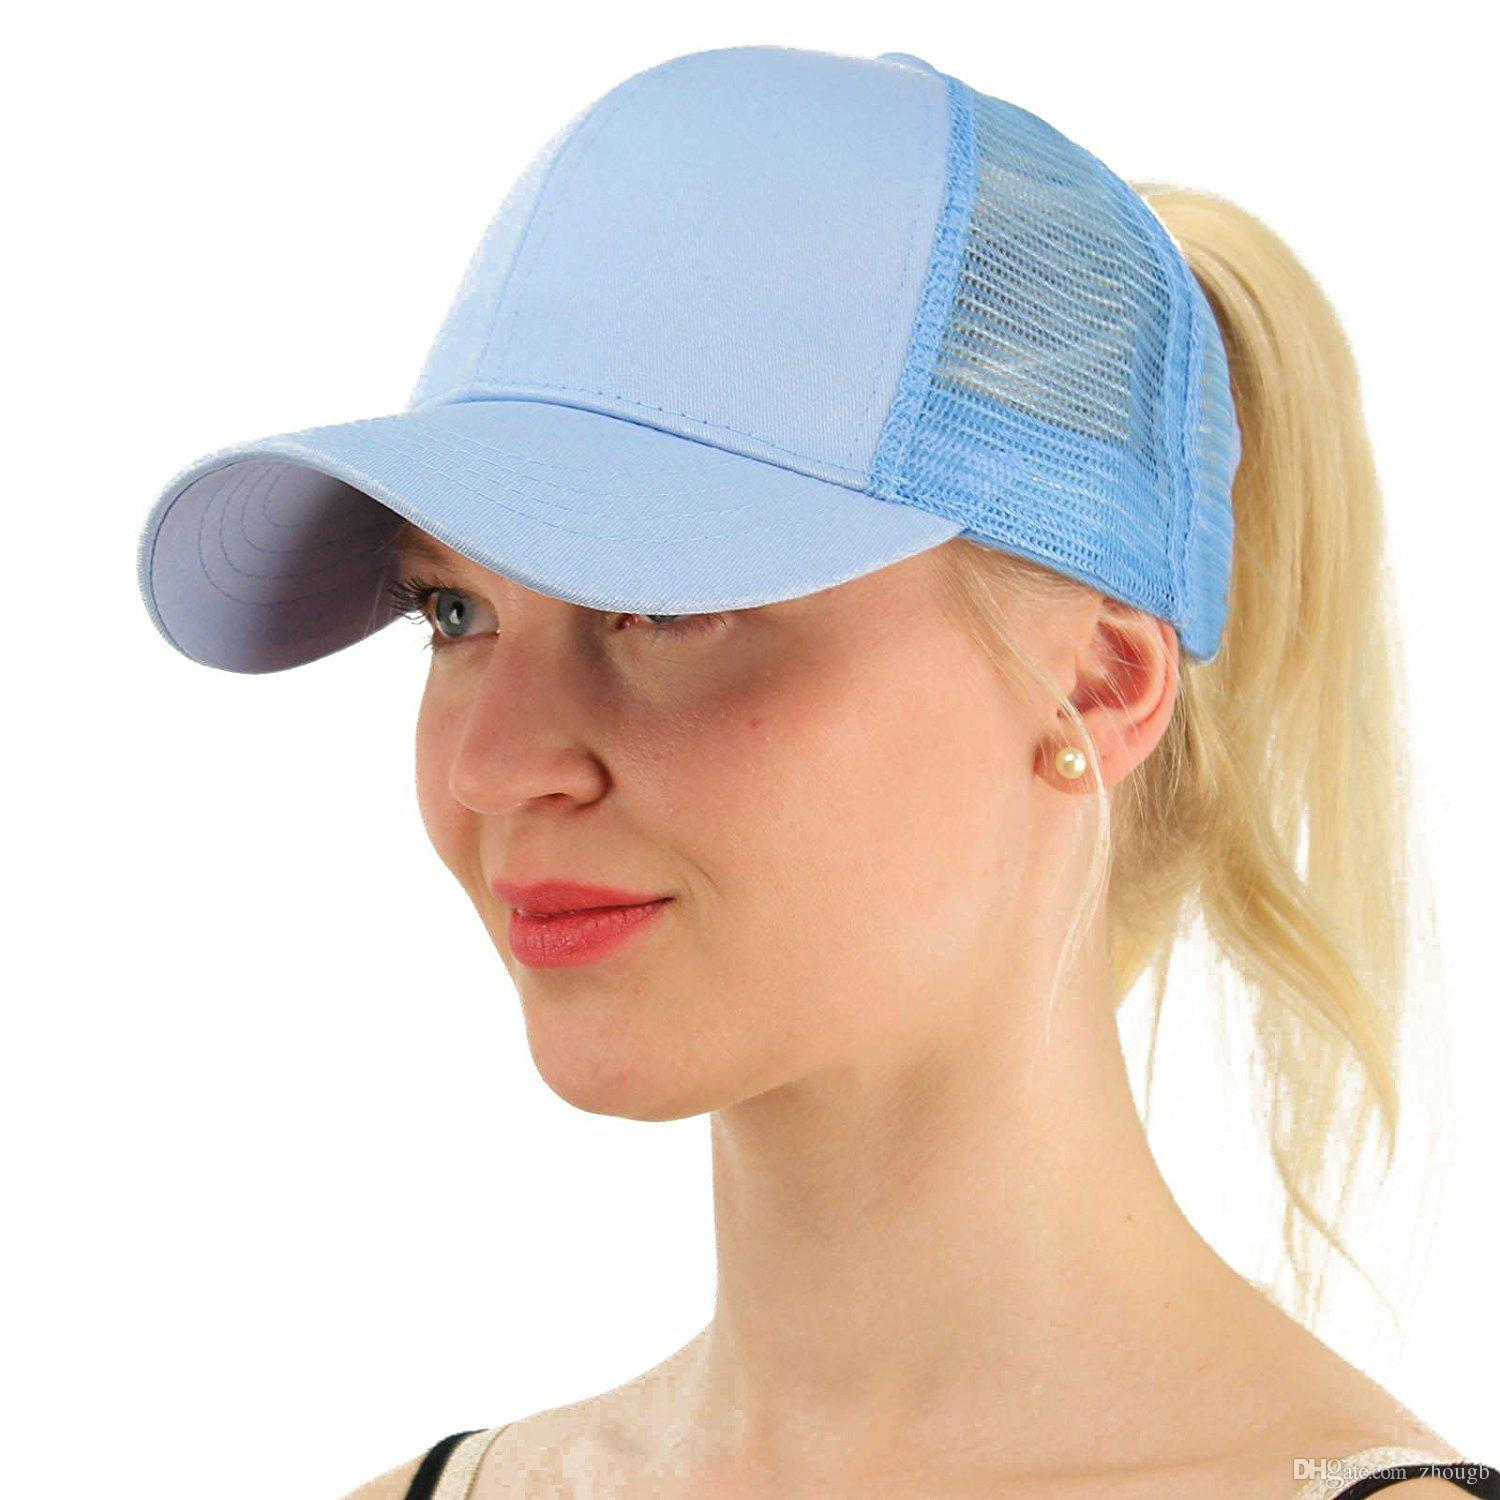 Novelty Hats With Ponytail - Parchment N Lead c07662a411e8